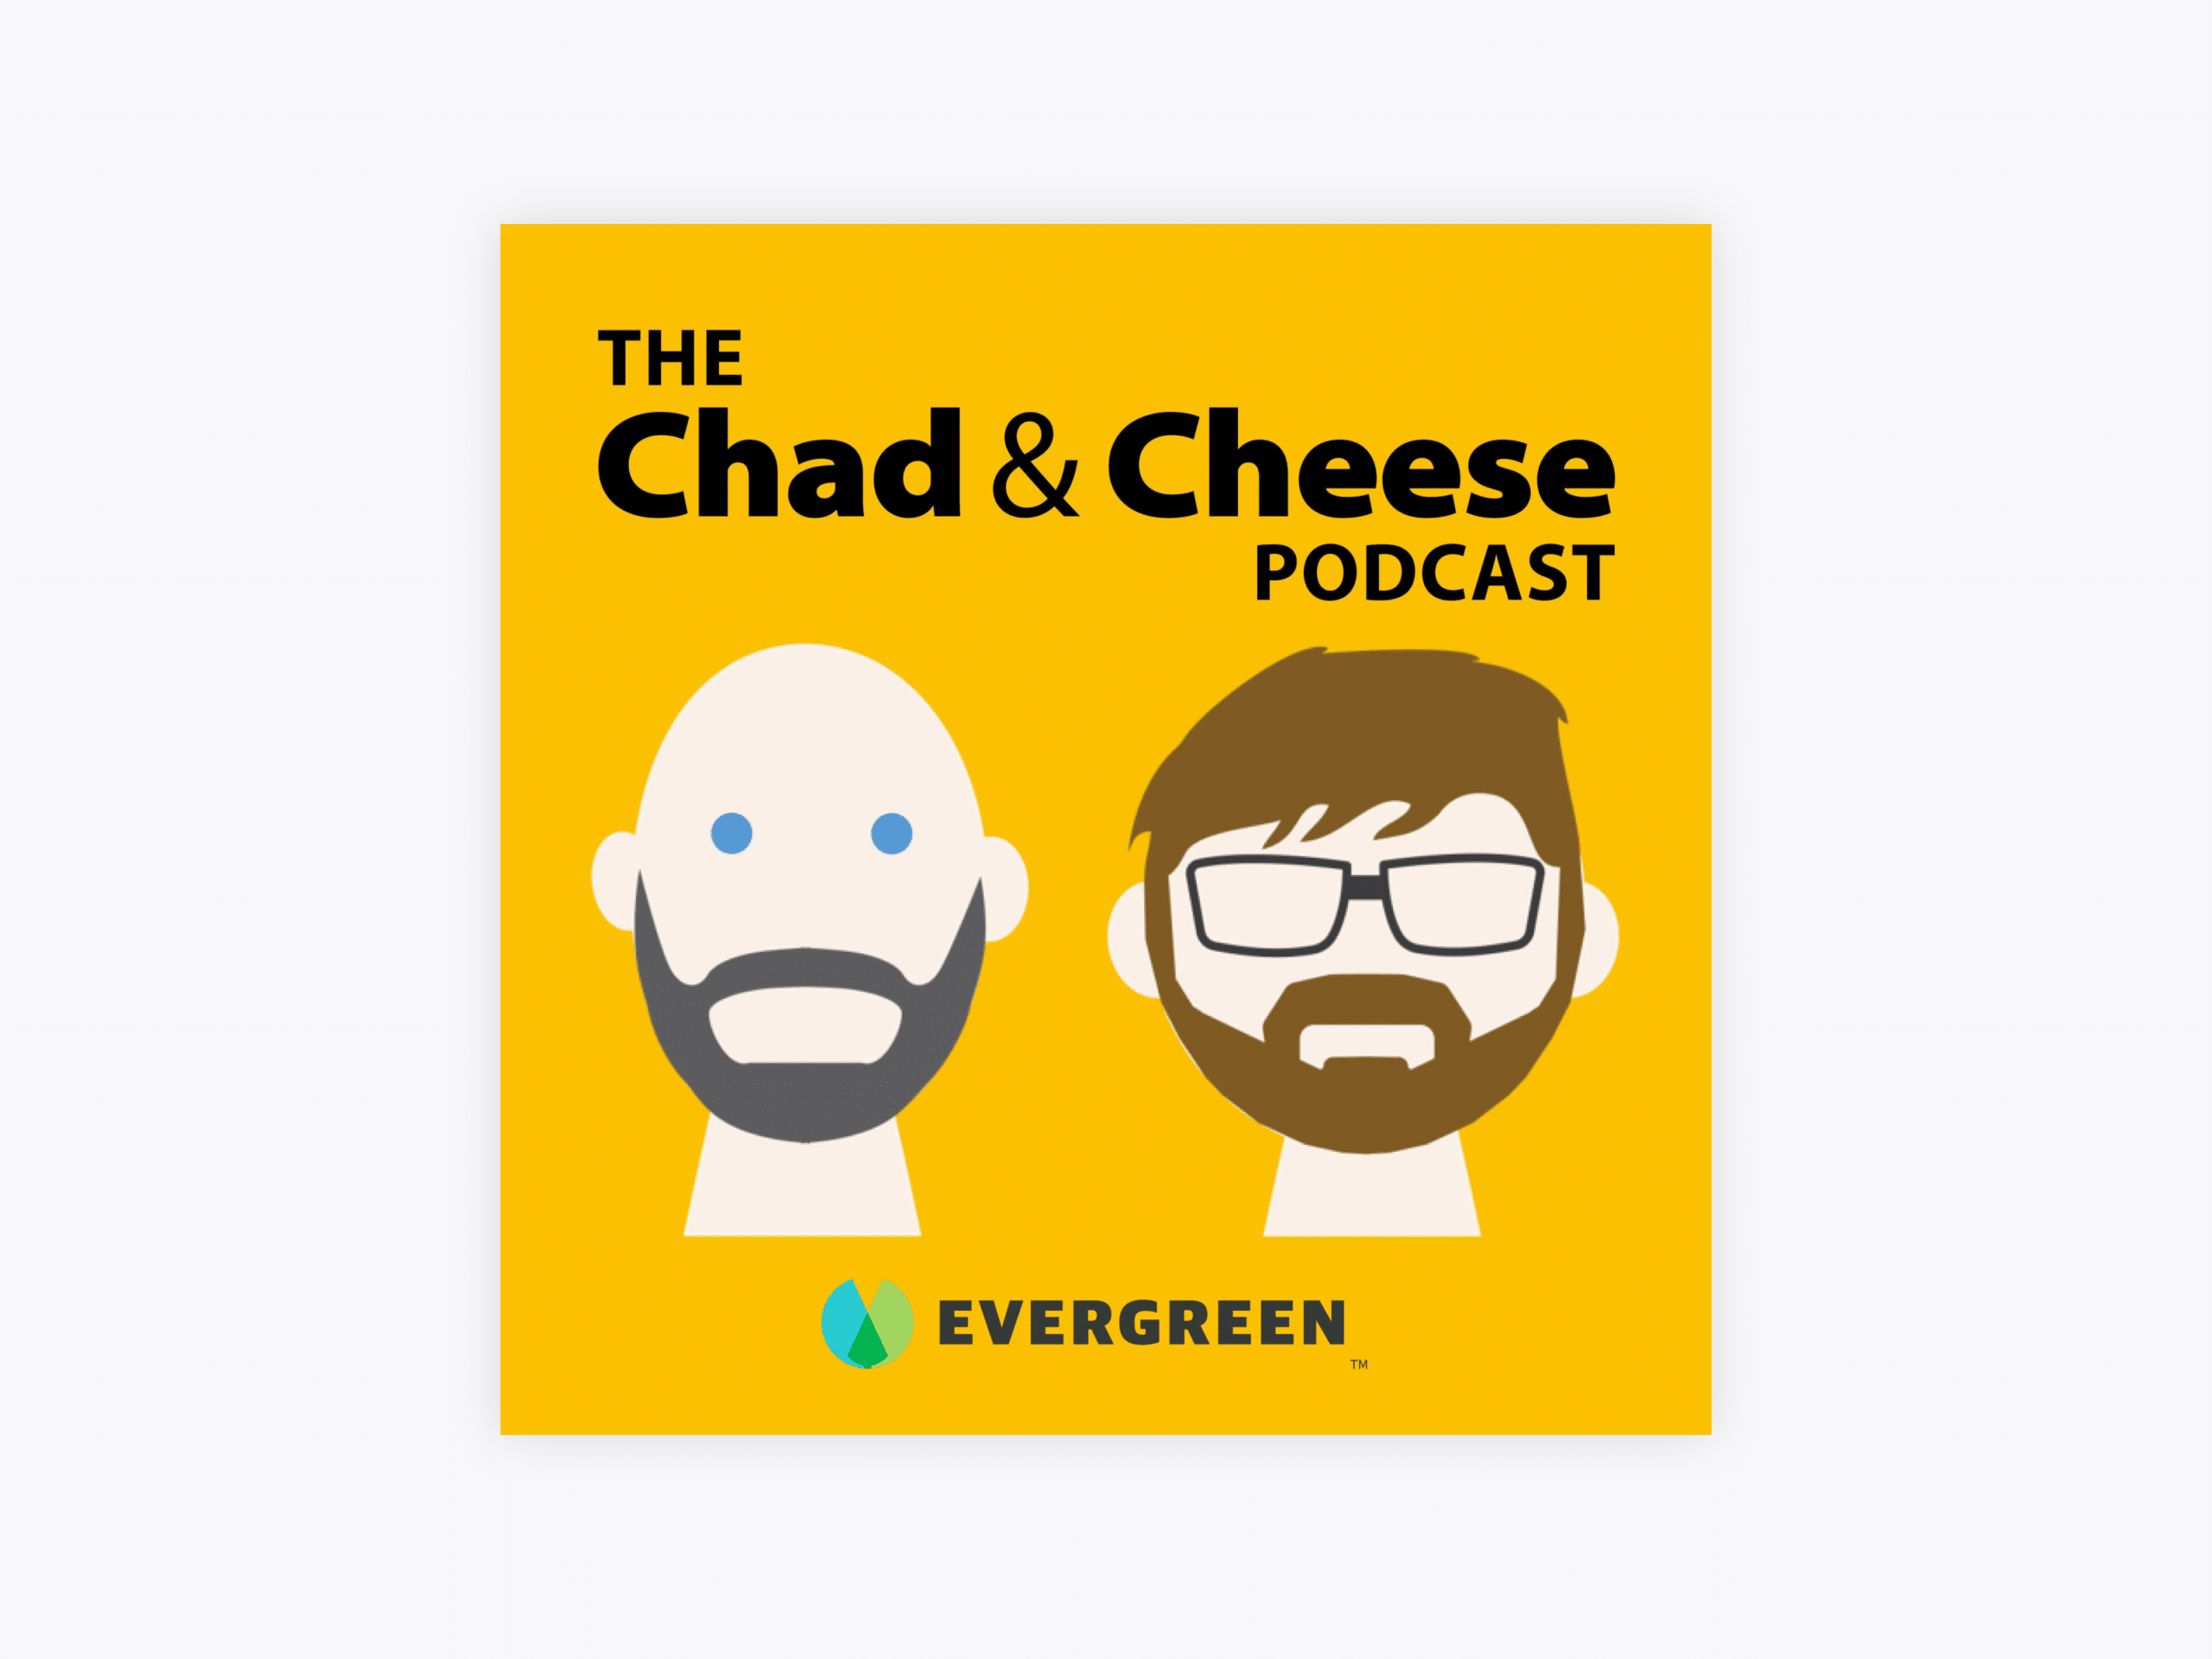 Cover art for the chad & cheese show